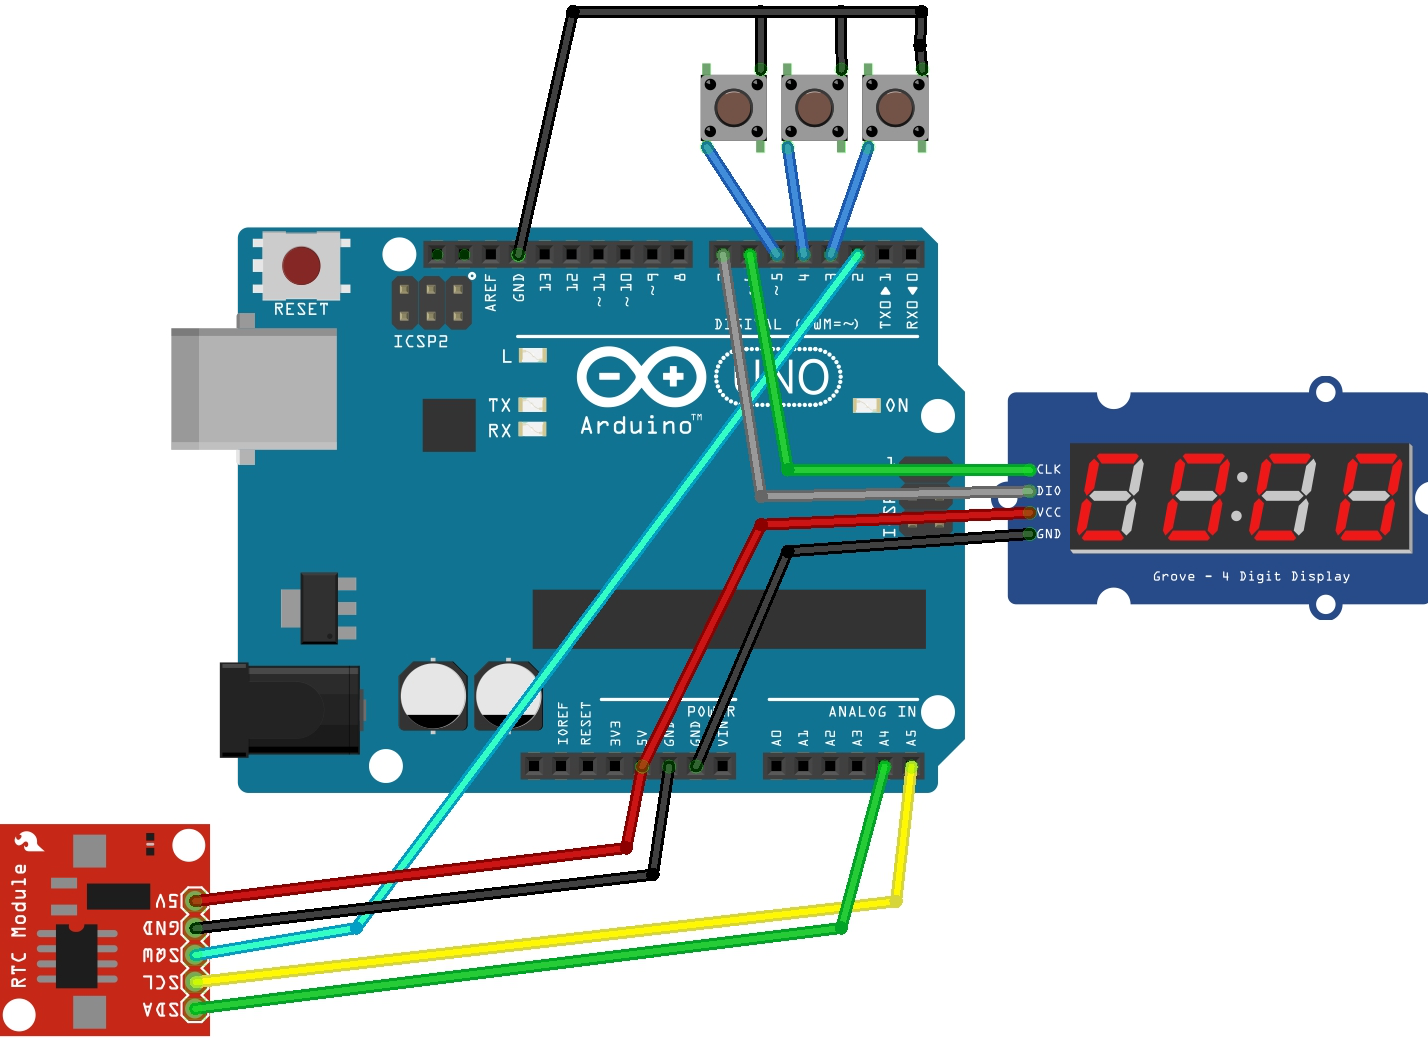 hight resolution of ds3231 real time clock rtc is a low power full binary coded decimal bcd clock calendar the clock can operate in either the 24 hour or 12 hour format